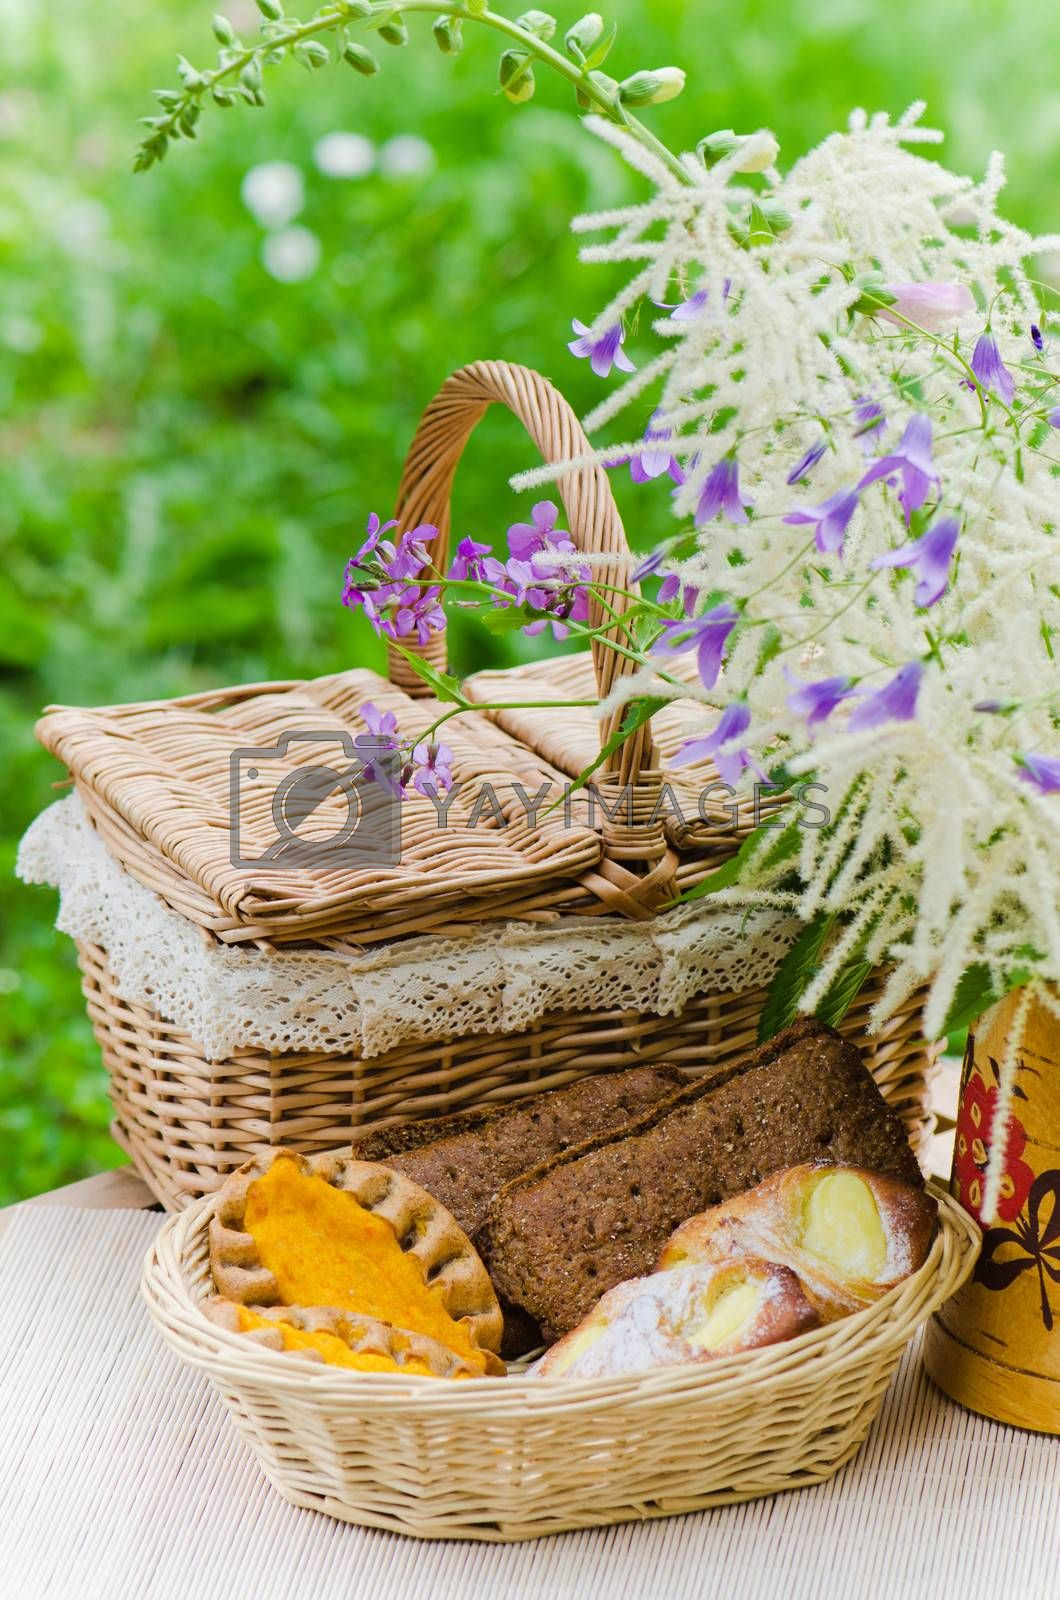 Buns in a wicker basket and a bouquet of field flowers